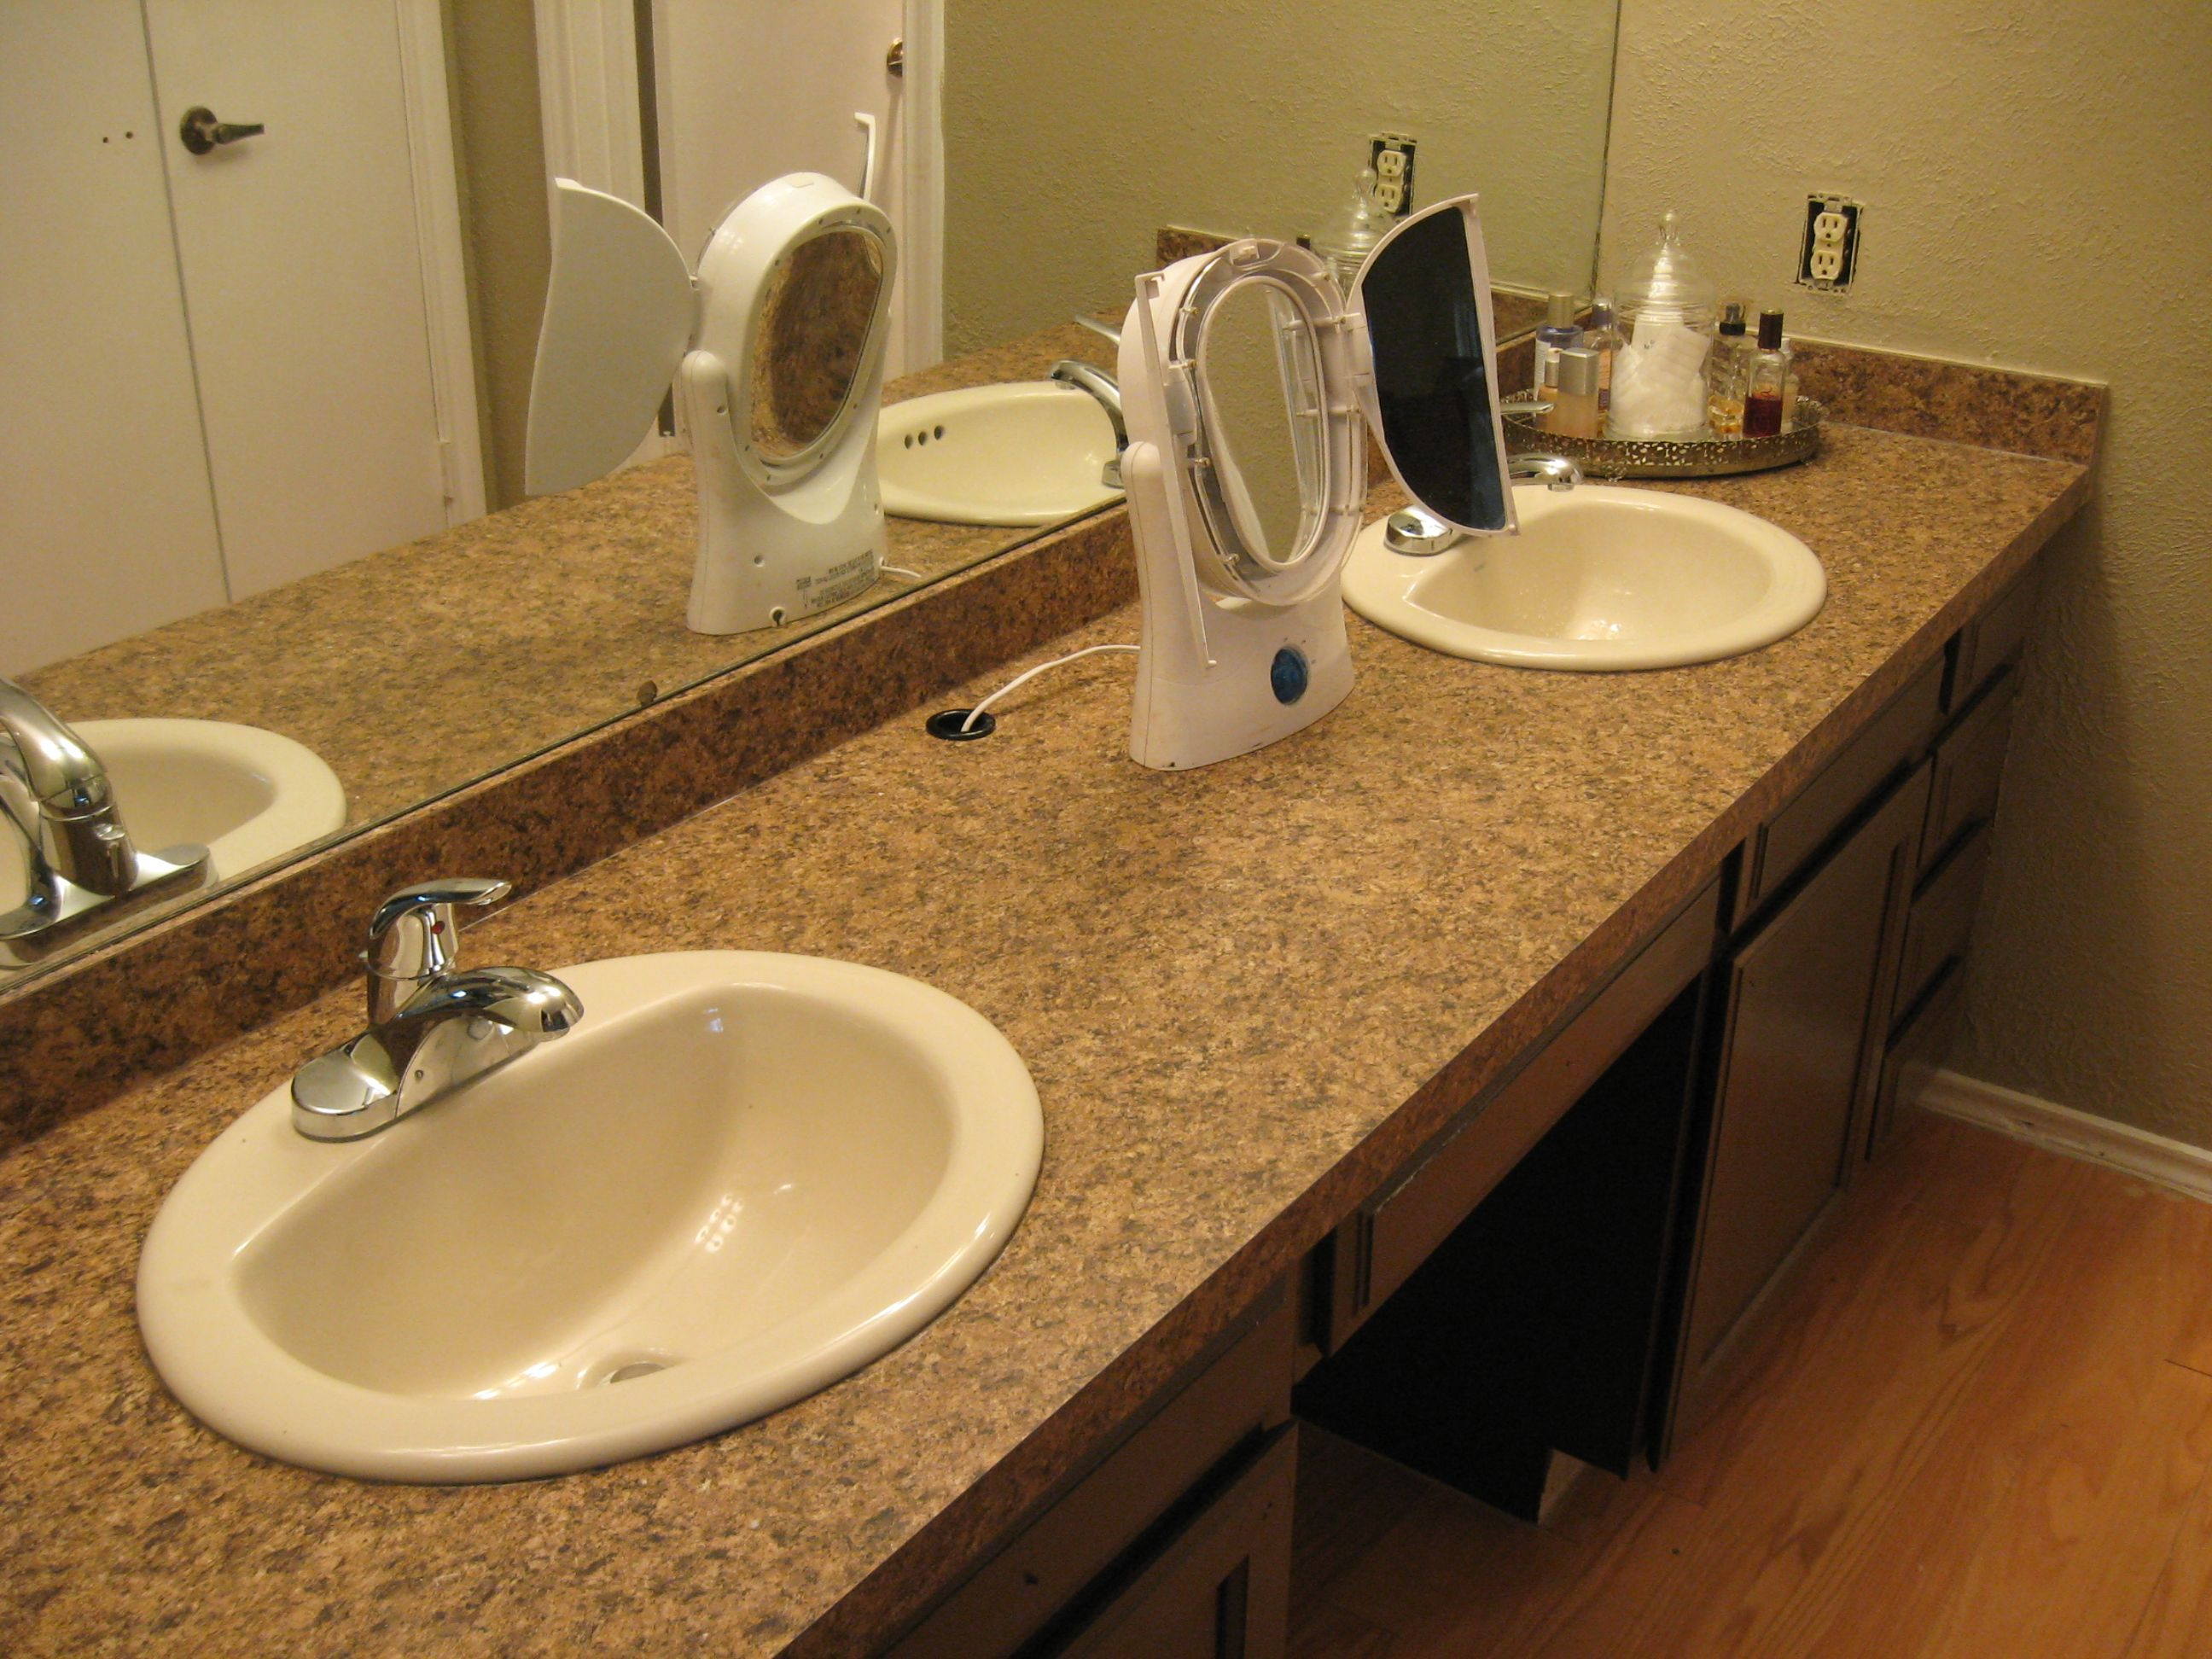 Swell Bathroom Laminate Countertop Bathroom Decor Ideas Interior Design Ideas Tzicisoteloinfo